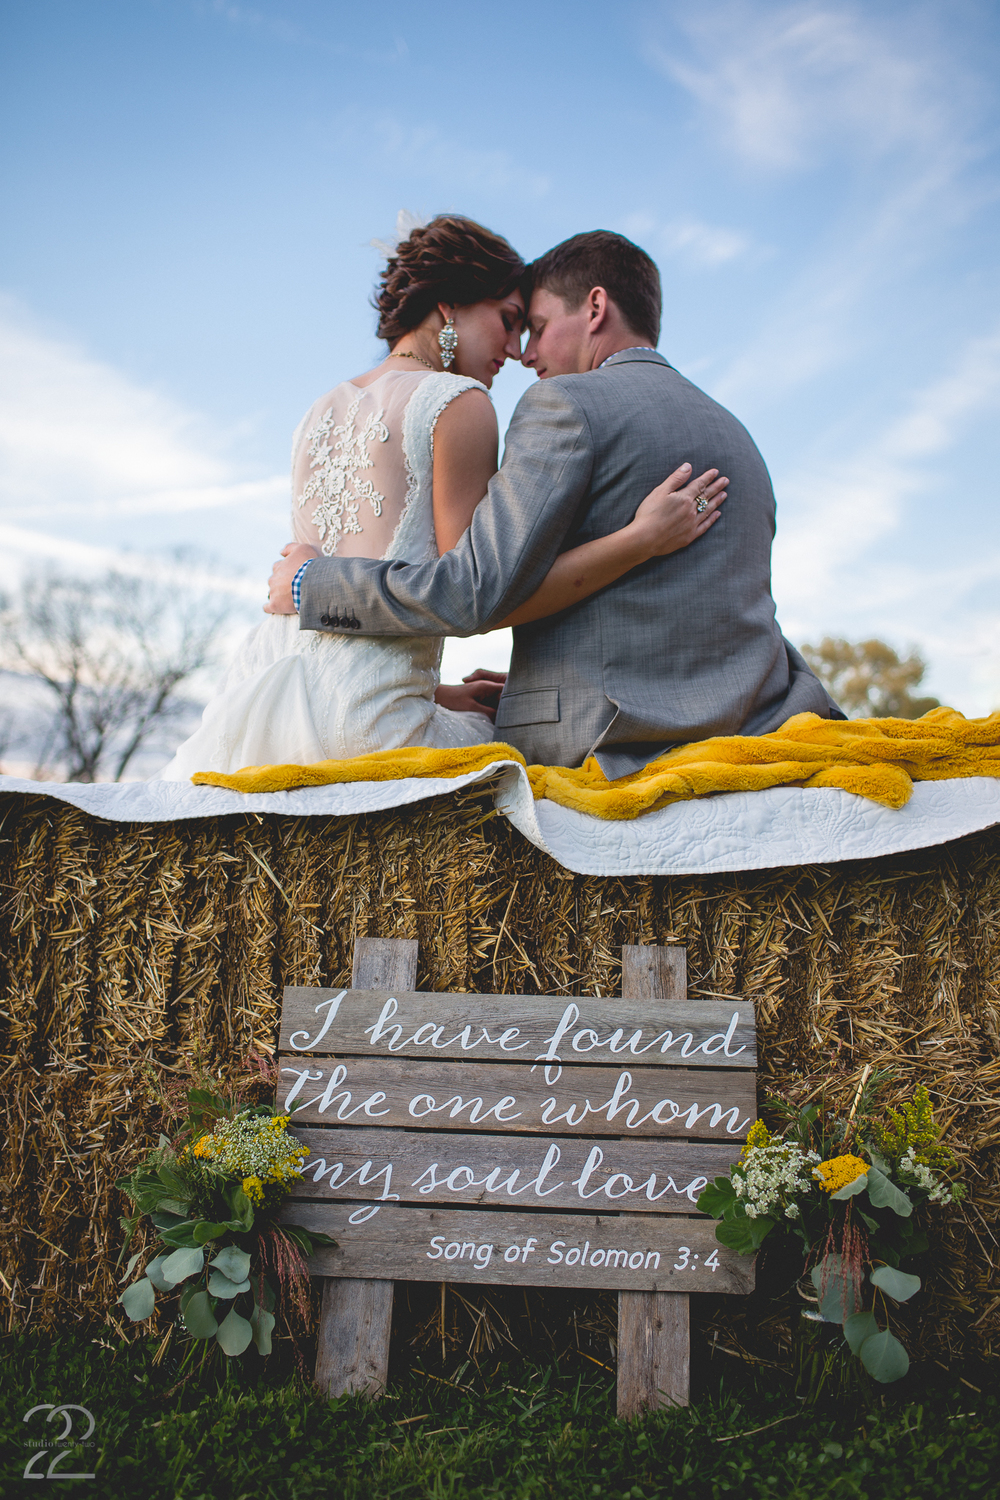 Canopy Creek Farm Wedding Cost